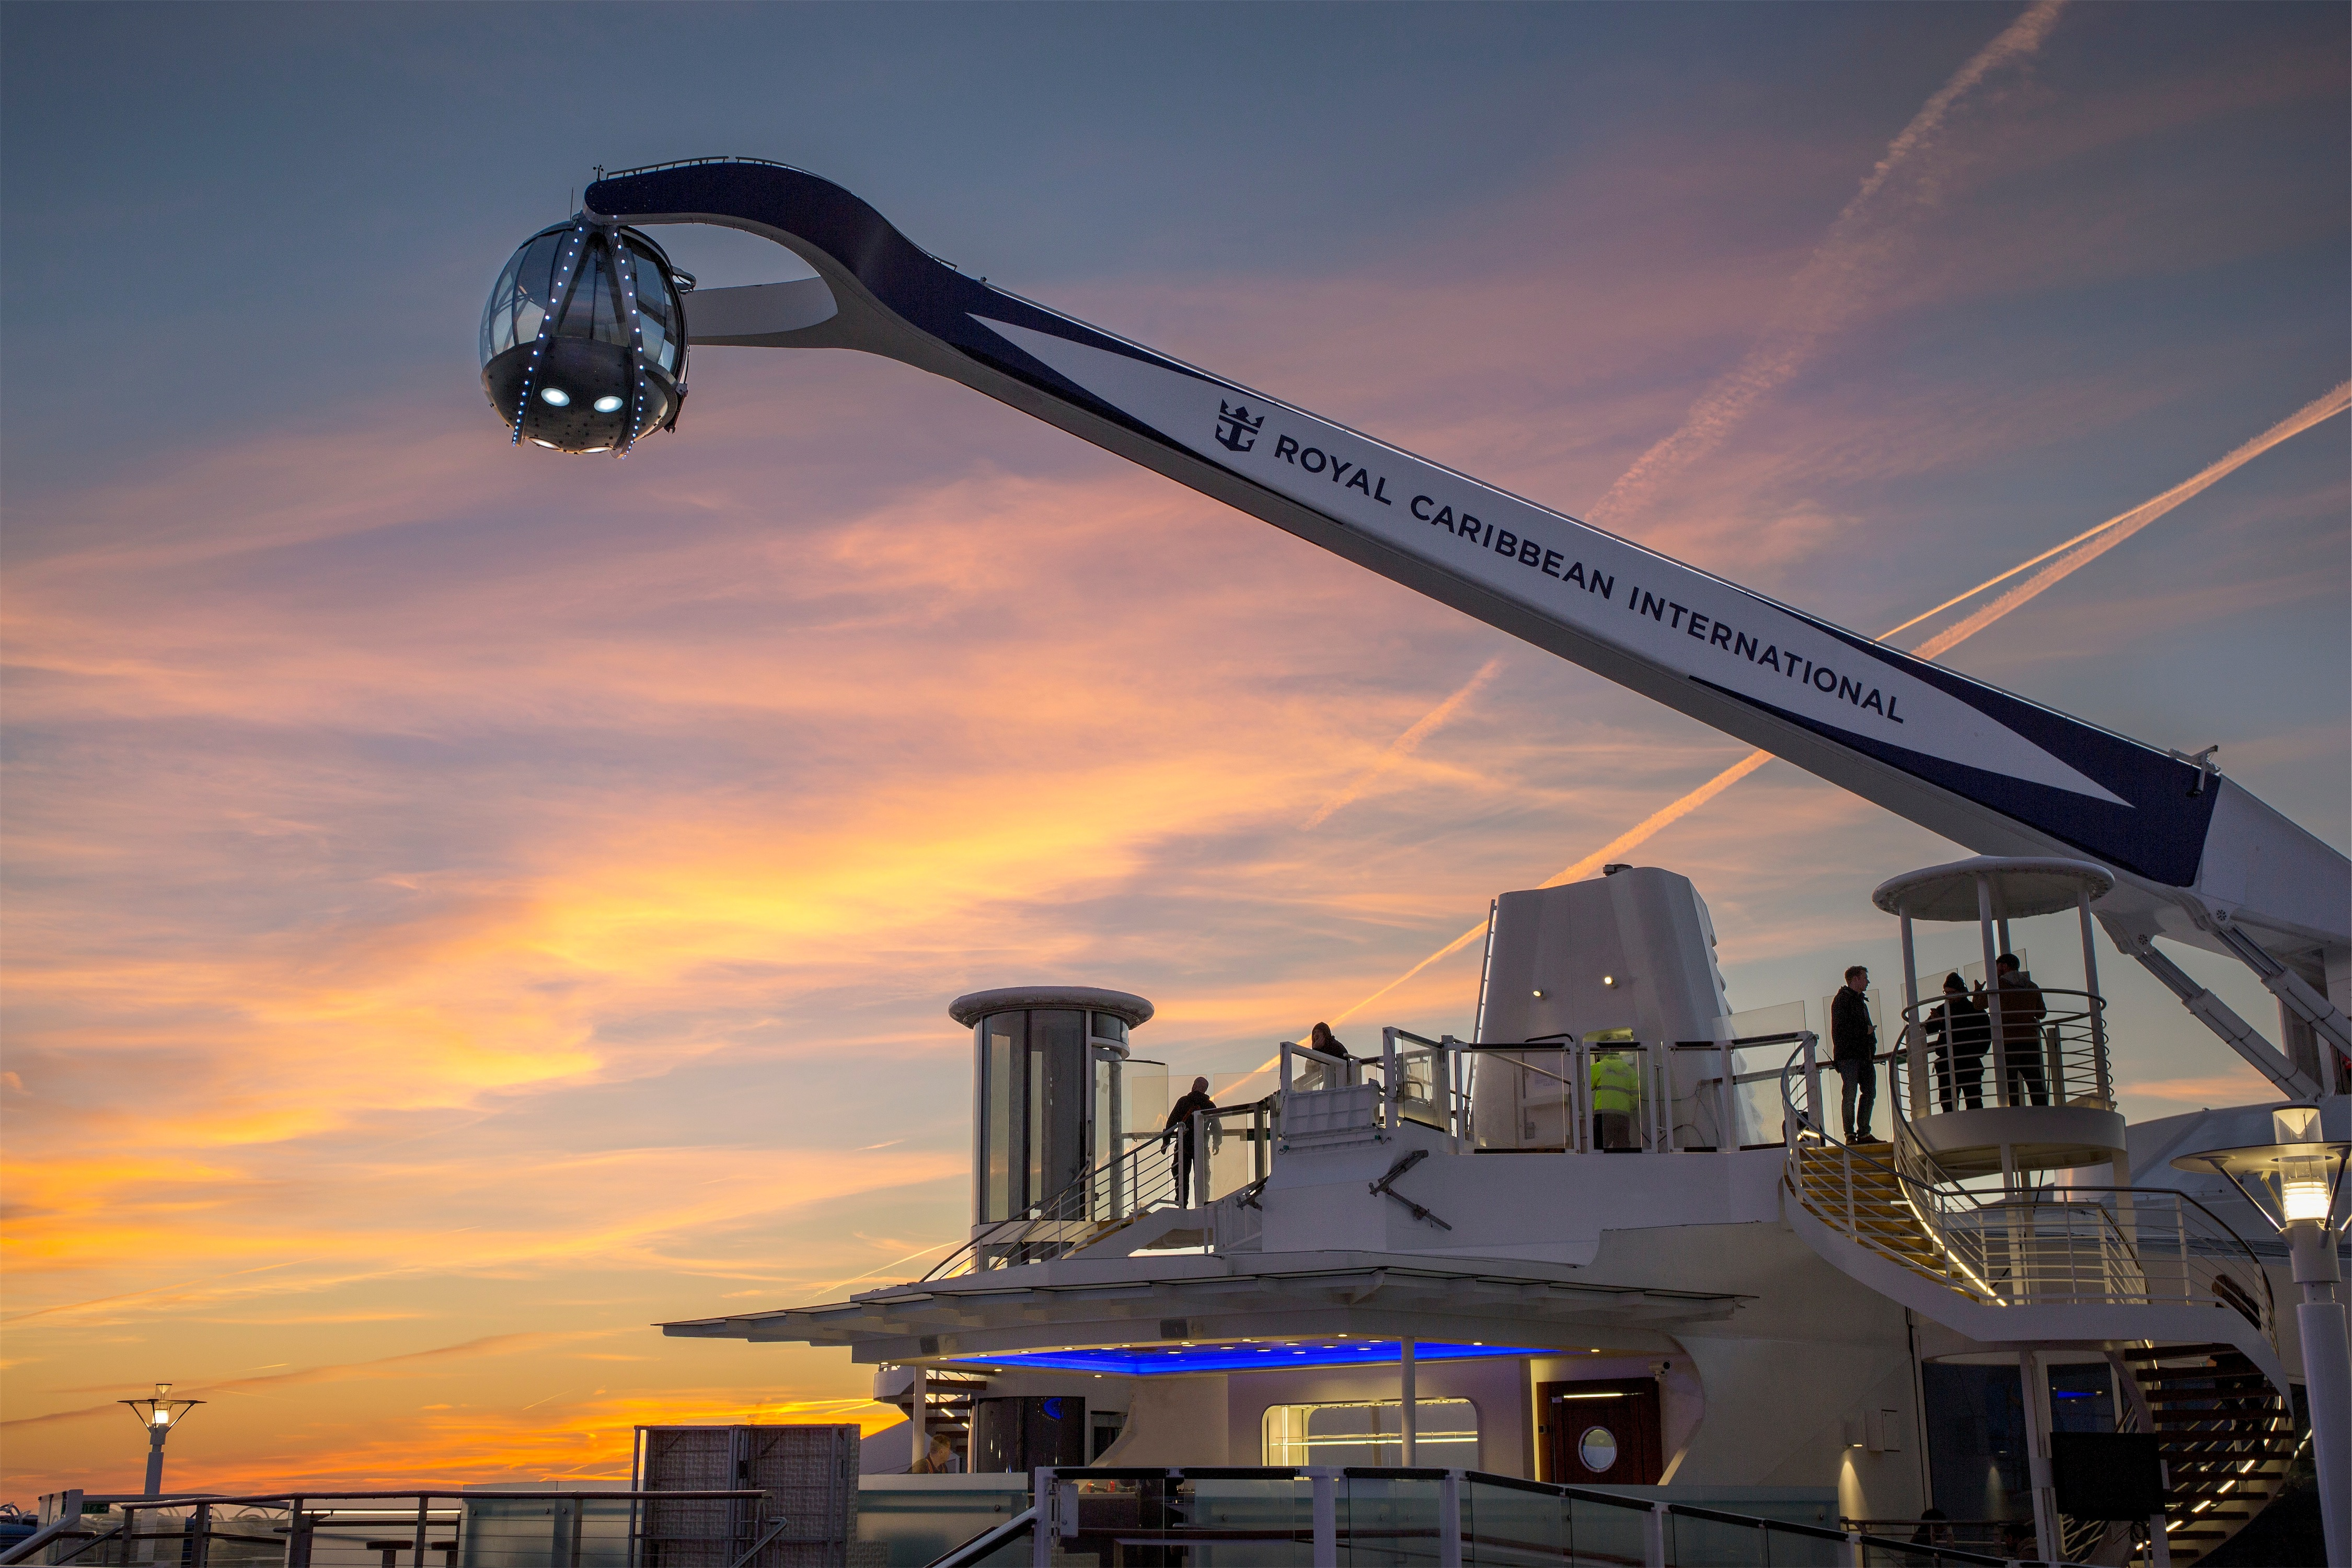 Royal Caribbean International Quantum of the Seas Exterior NorthStar.jpg